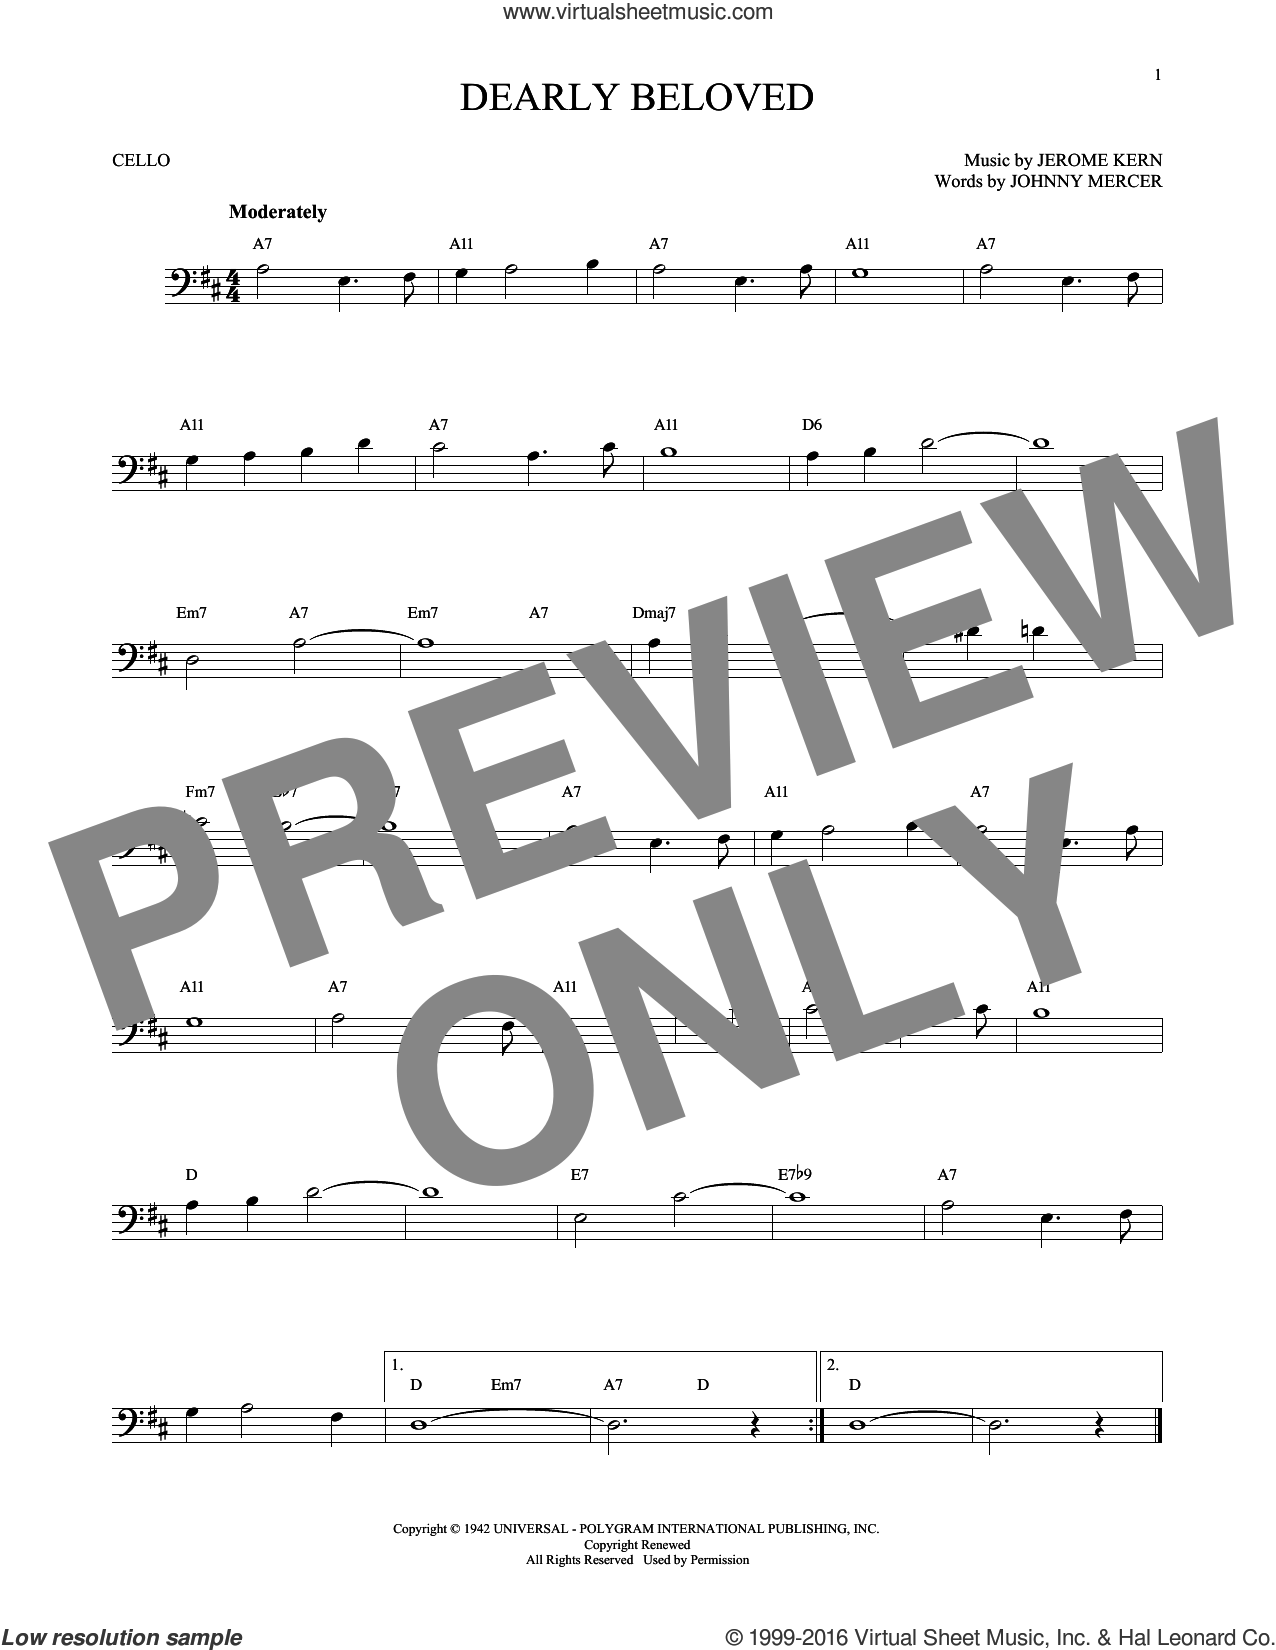 Dearly Beloved sheet music for cello solo by Johnny Mercer